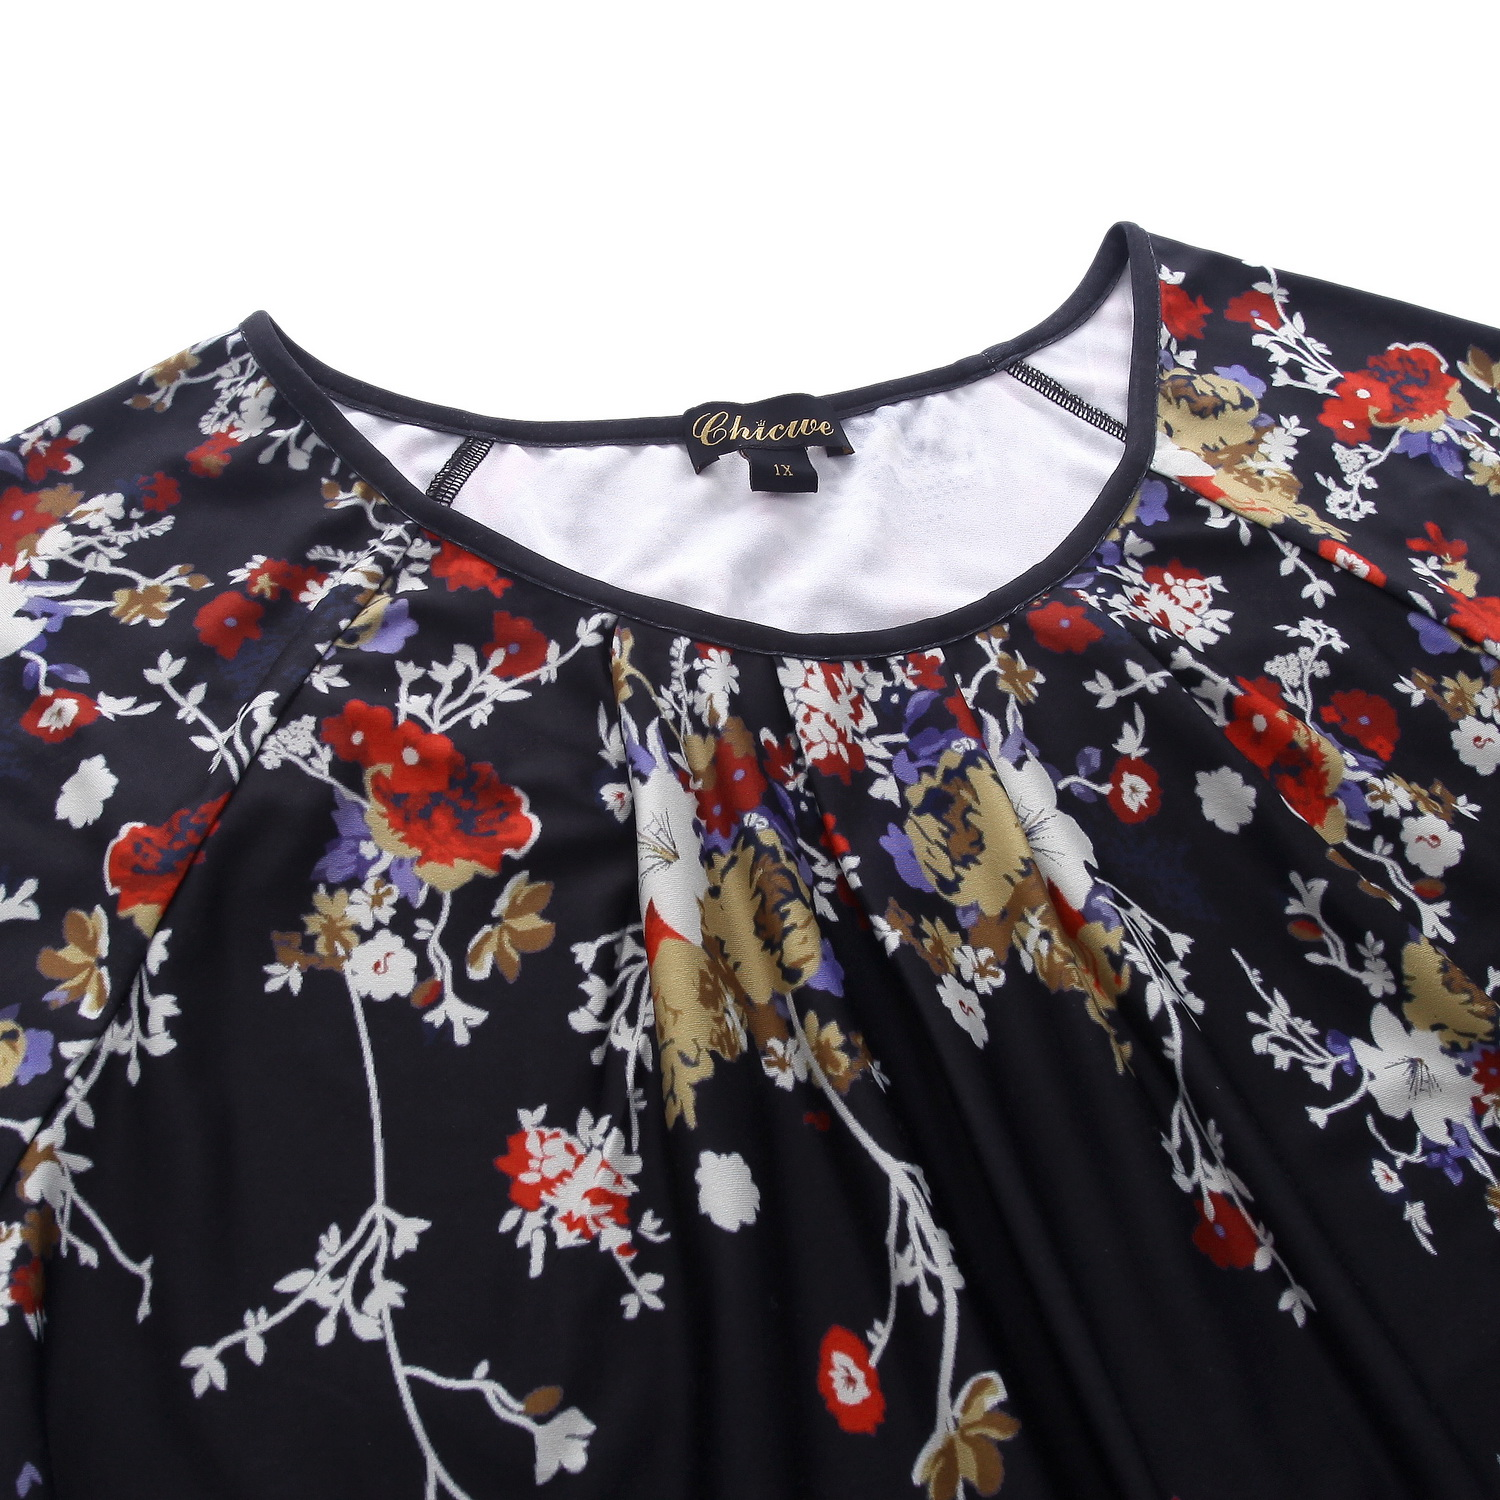 bd2f0498e5c99 Chicwe Women s Plus Size Stretch Floral Designed Top Shirt Large Size Big  Size Garden Flowers Tunic with Neck Pleats 1X 4X-in Blouses   Shirts from  Women s ...